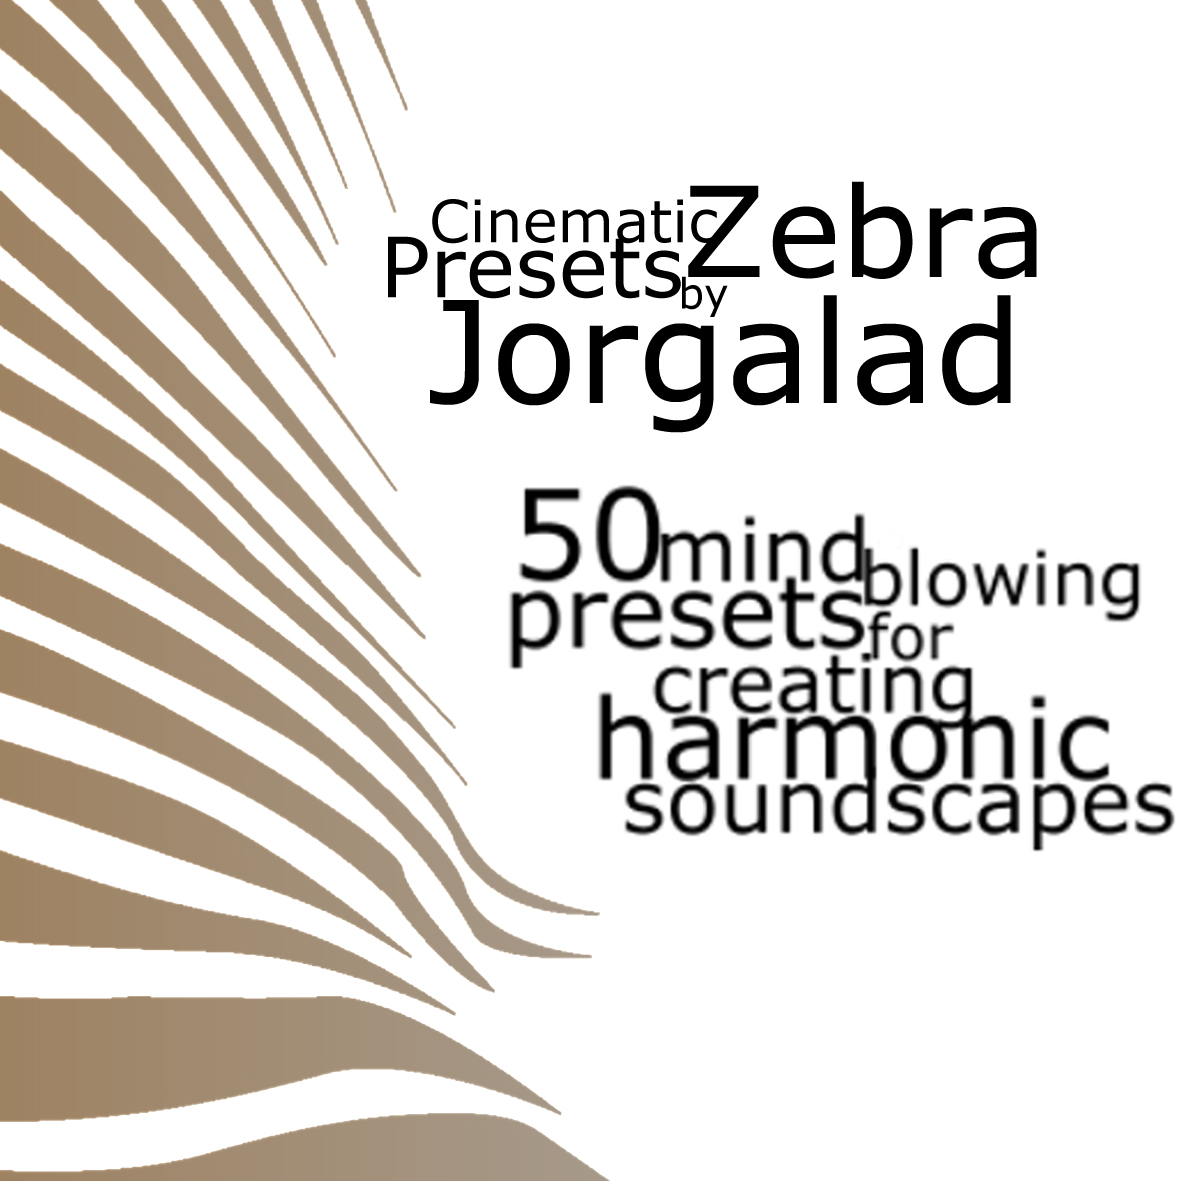 Jorgalad's Cinematic Zebra Presets | Synthmob